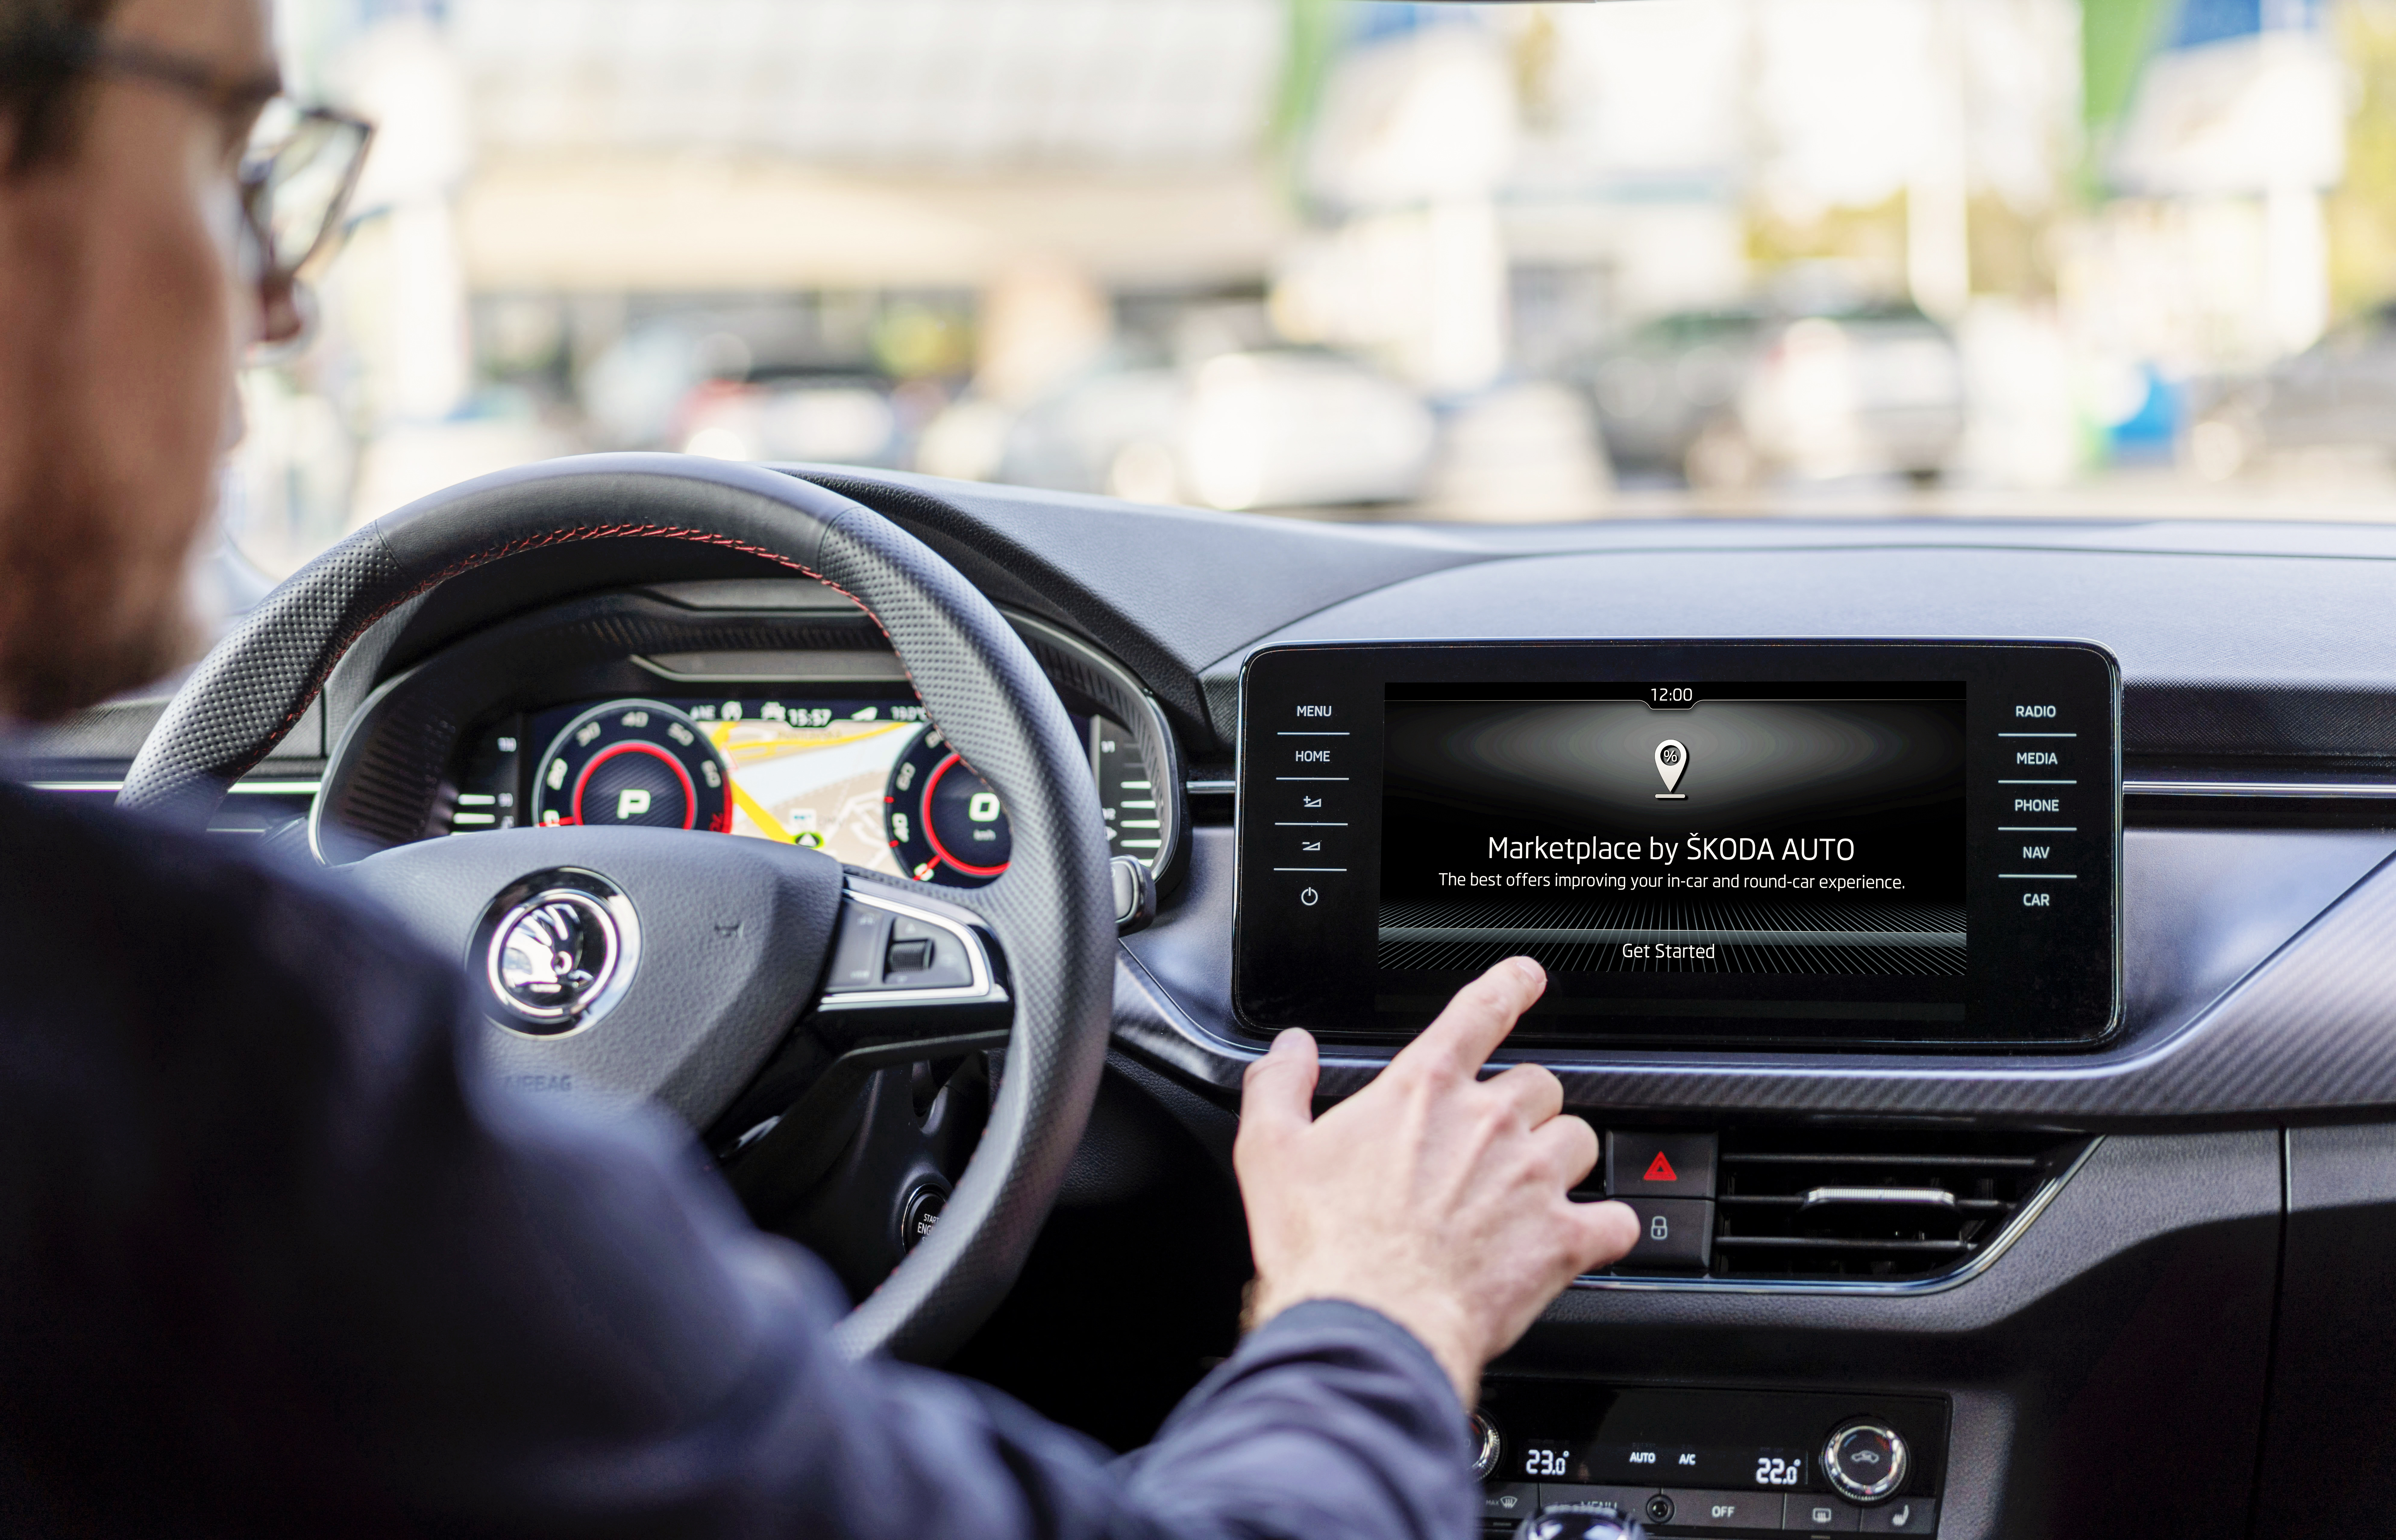 SKODA AUTO adds location-based offers to its range of connectivity services - Image 4